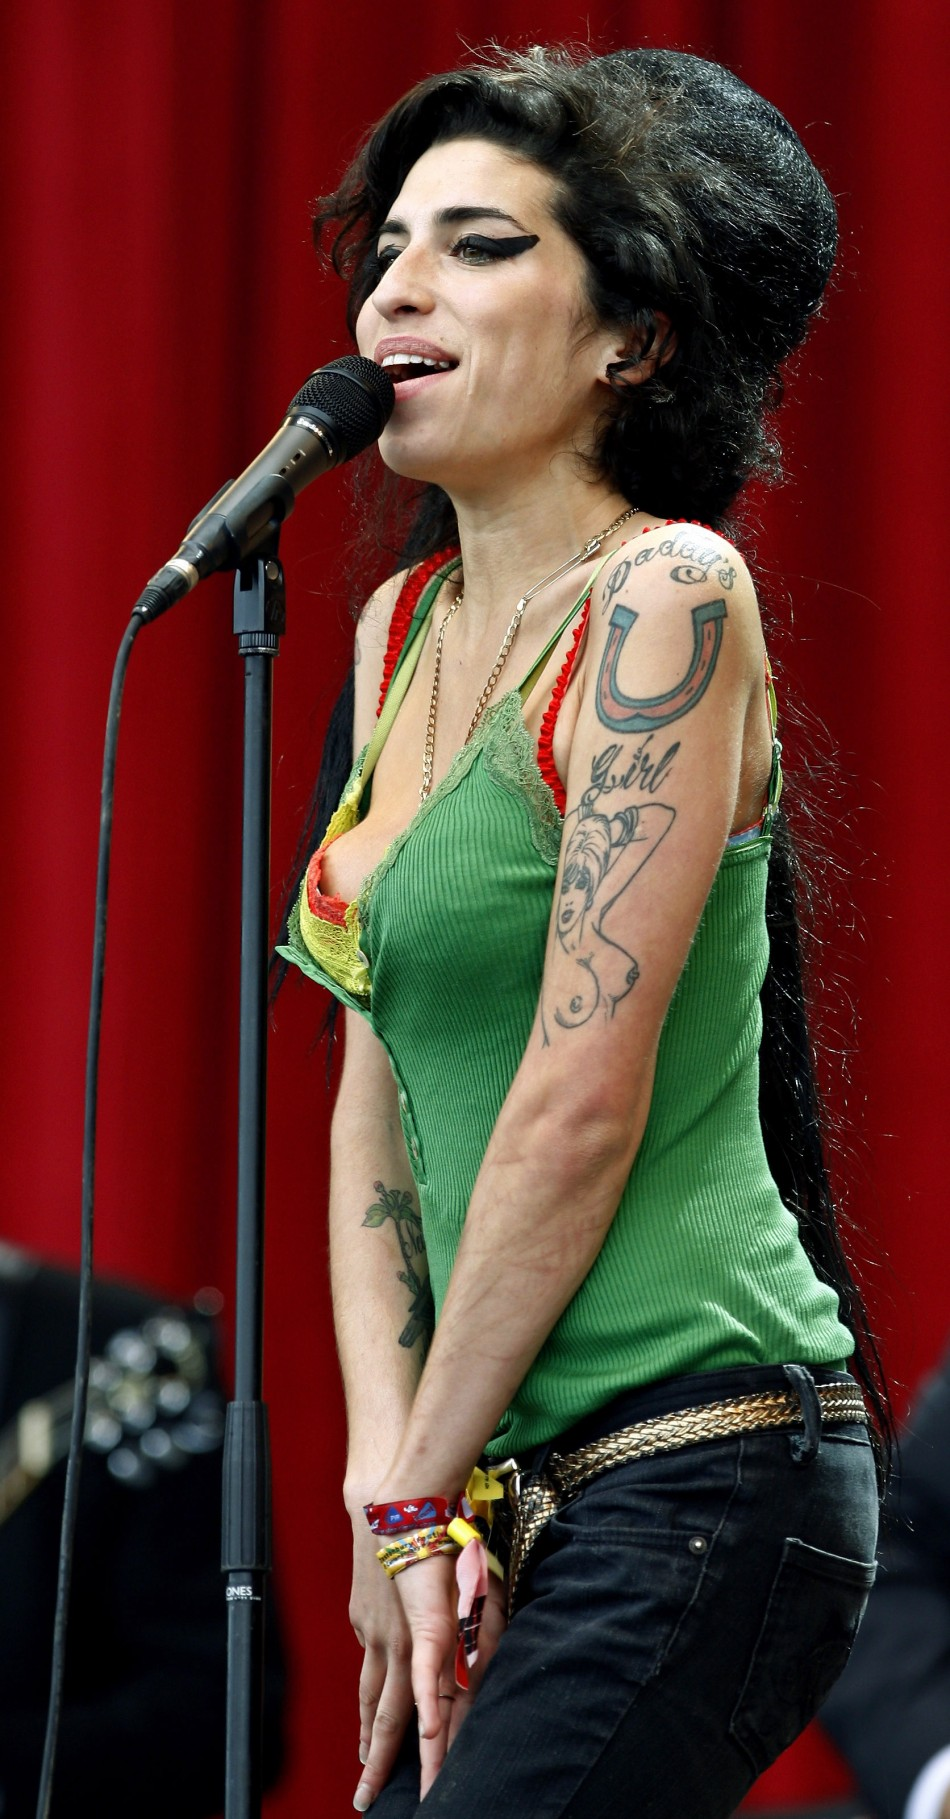 Excess Detox Led to Amy Winehouse's Death, Says Dad (Photos) Amy Winehouse